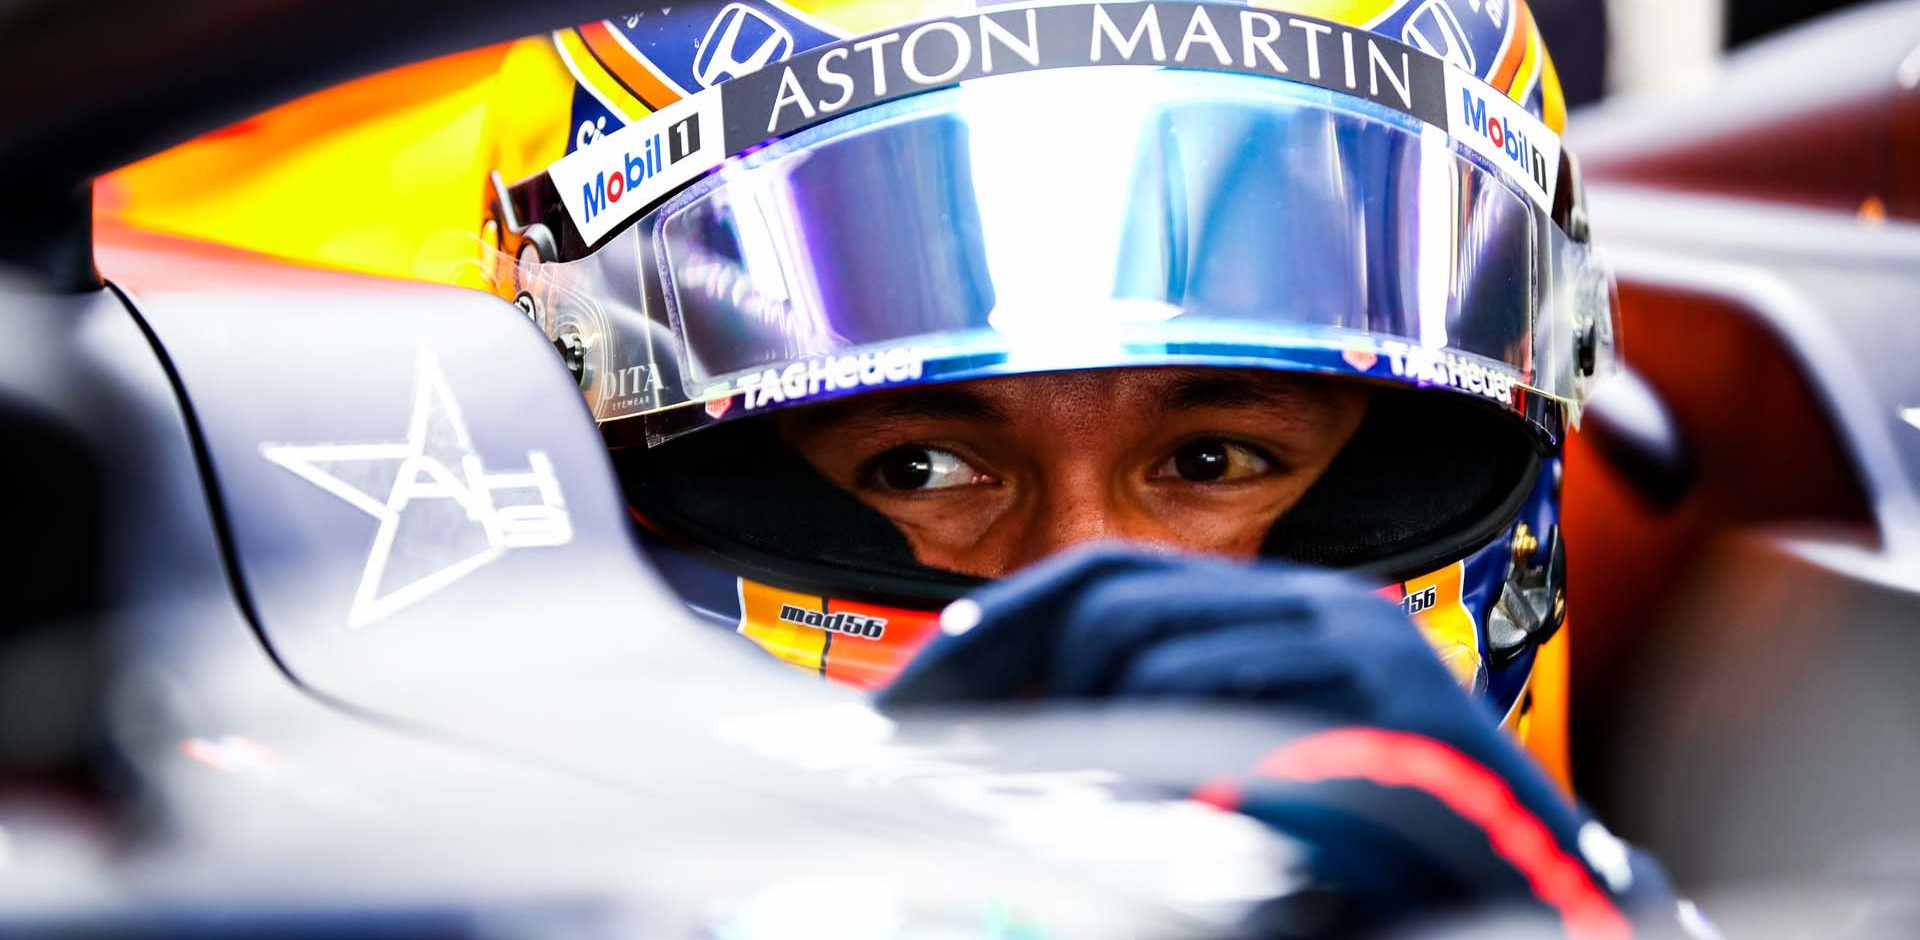 SPA, BELGIUM - AUGUST 28: Alexander Albon of Thailand and Red Bull Racing sits in his car in the garage during practice for the F1 Grand Prix of Belgium at Circuit de Spa-Francorchamps on August 28, 2020 in Spa, Belgium. (Photo by Mark Thompson/Getty Images,)